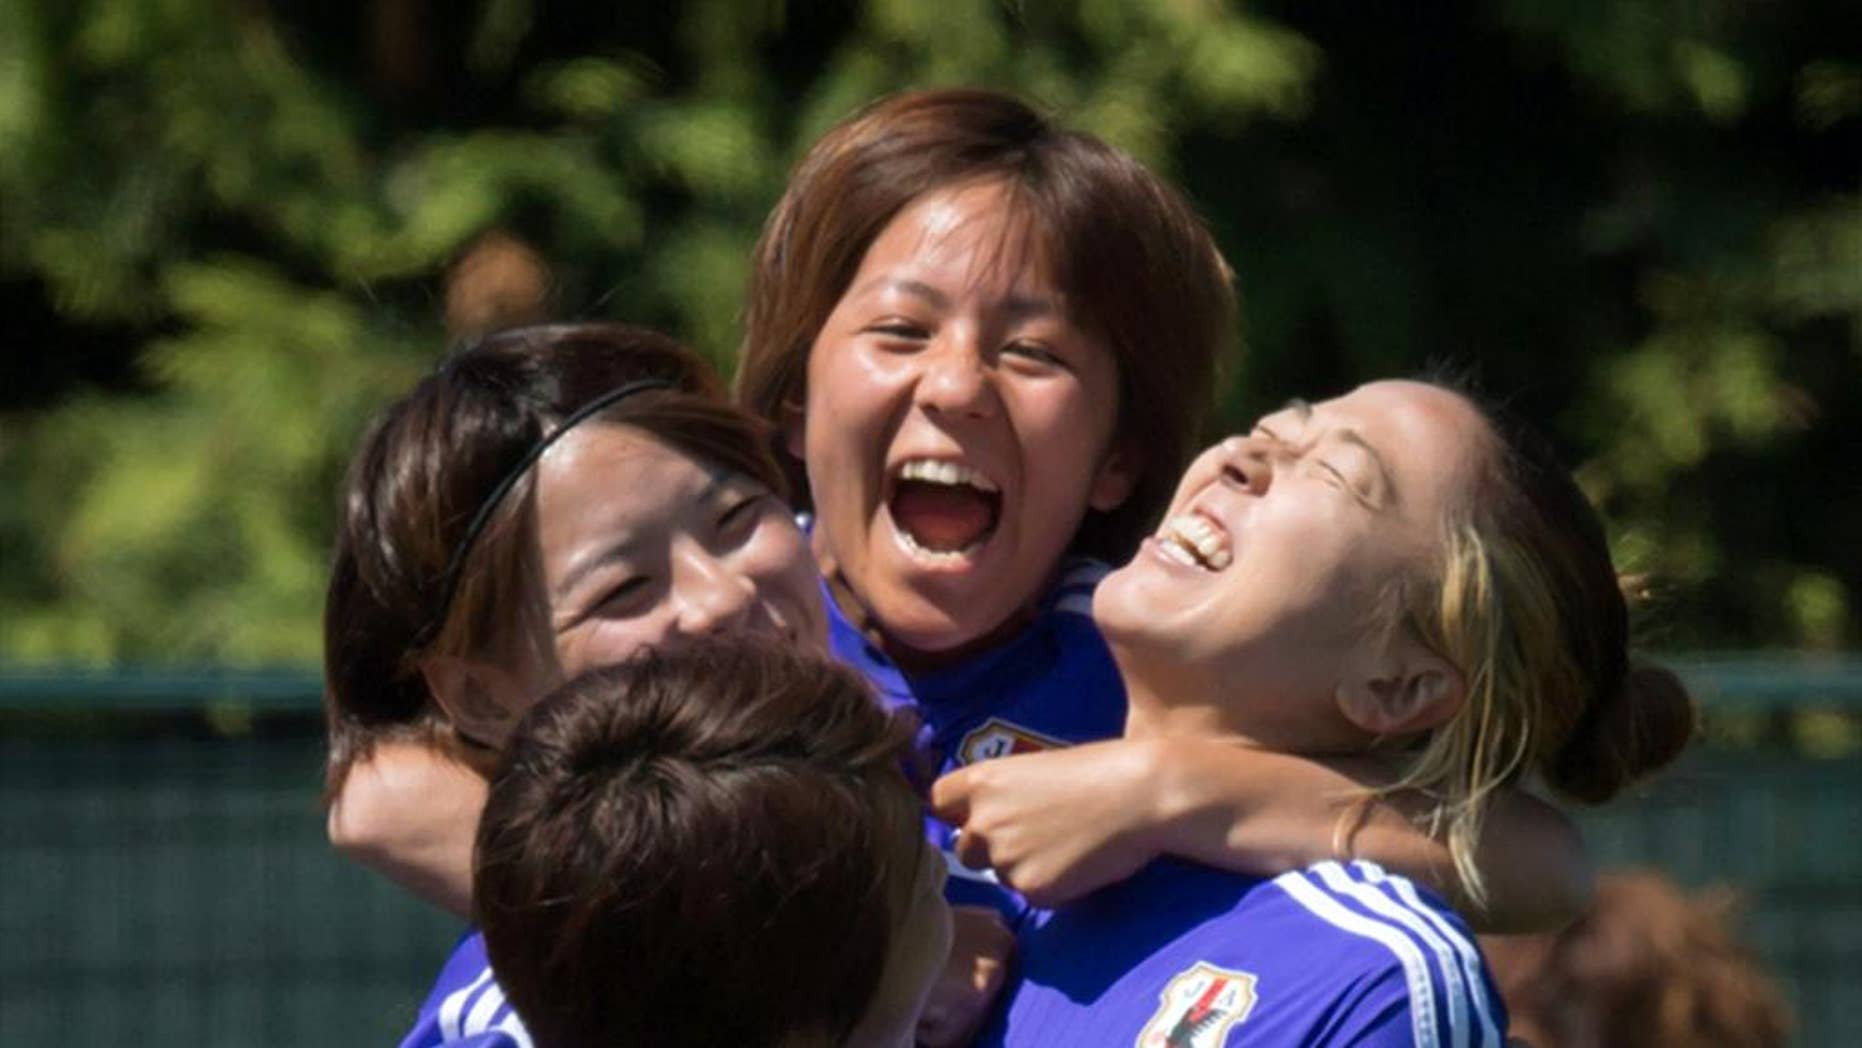 Japan's Mana Iwabuchi, back, jumps onto teammates Aya Sameshima, back left, Yuki Ogimi, right, and Aya Miyama, front, during a practice session in Vancouver, British Columbia, in Canada, on Saturday, July 4, 2015. Japan and the United States are scheduled to play in the final of the FIFA Women's World Cup soccer tournament on Sunday in Vancouver. (Darryl Dyck/The Canadian Press via AP) MANDATORY CREDIT